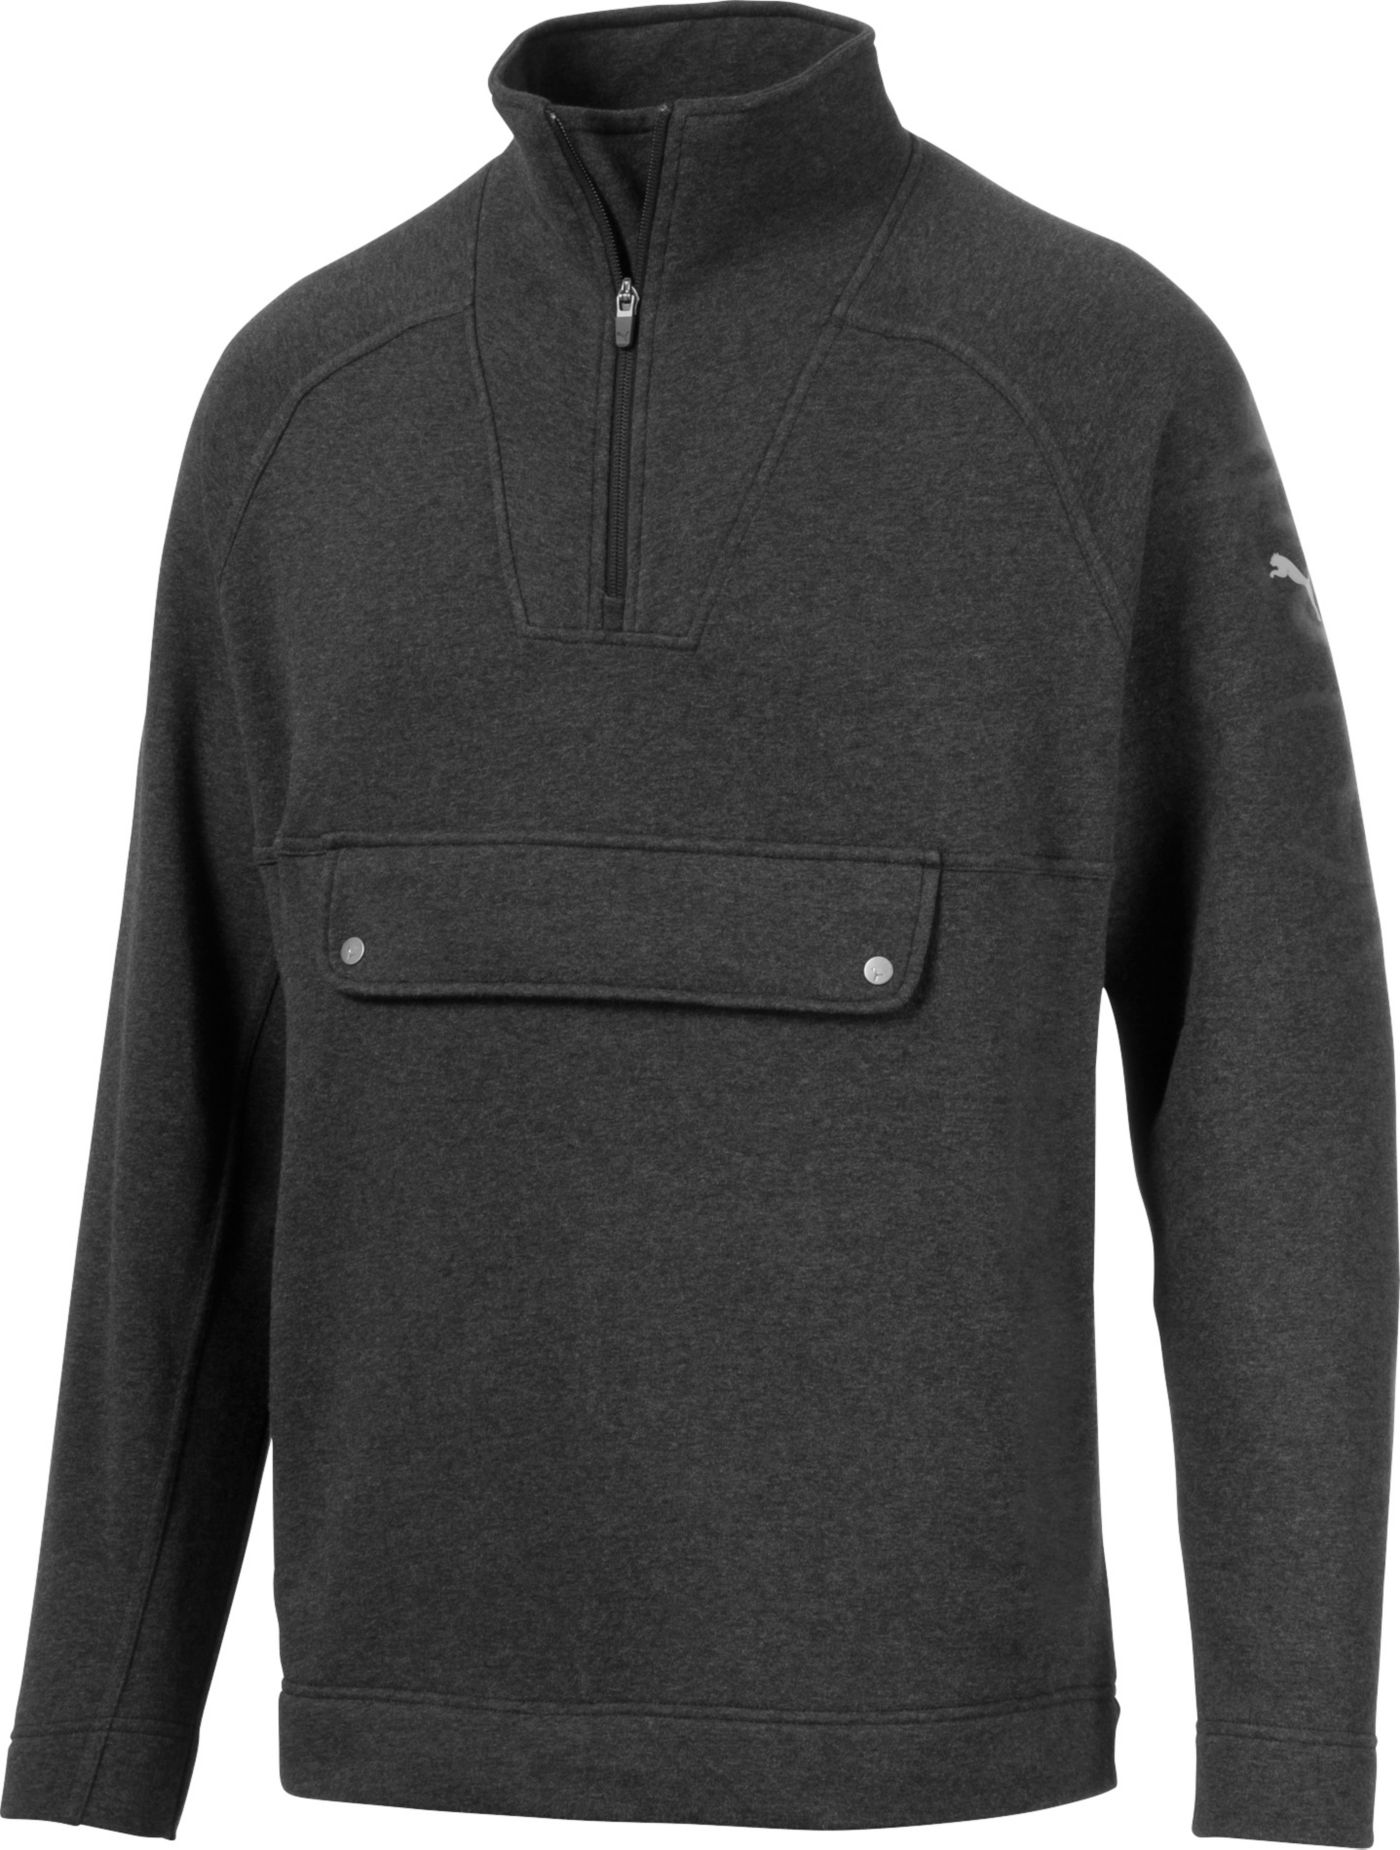 PUMA Men's Fusion ¼ Zip Golf Pullover